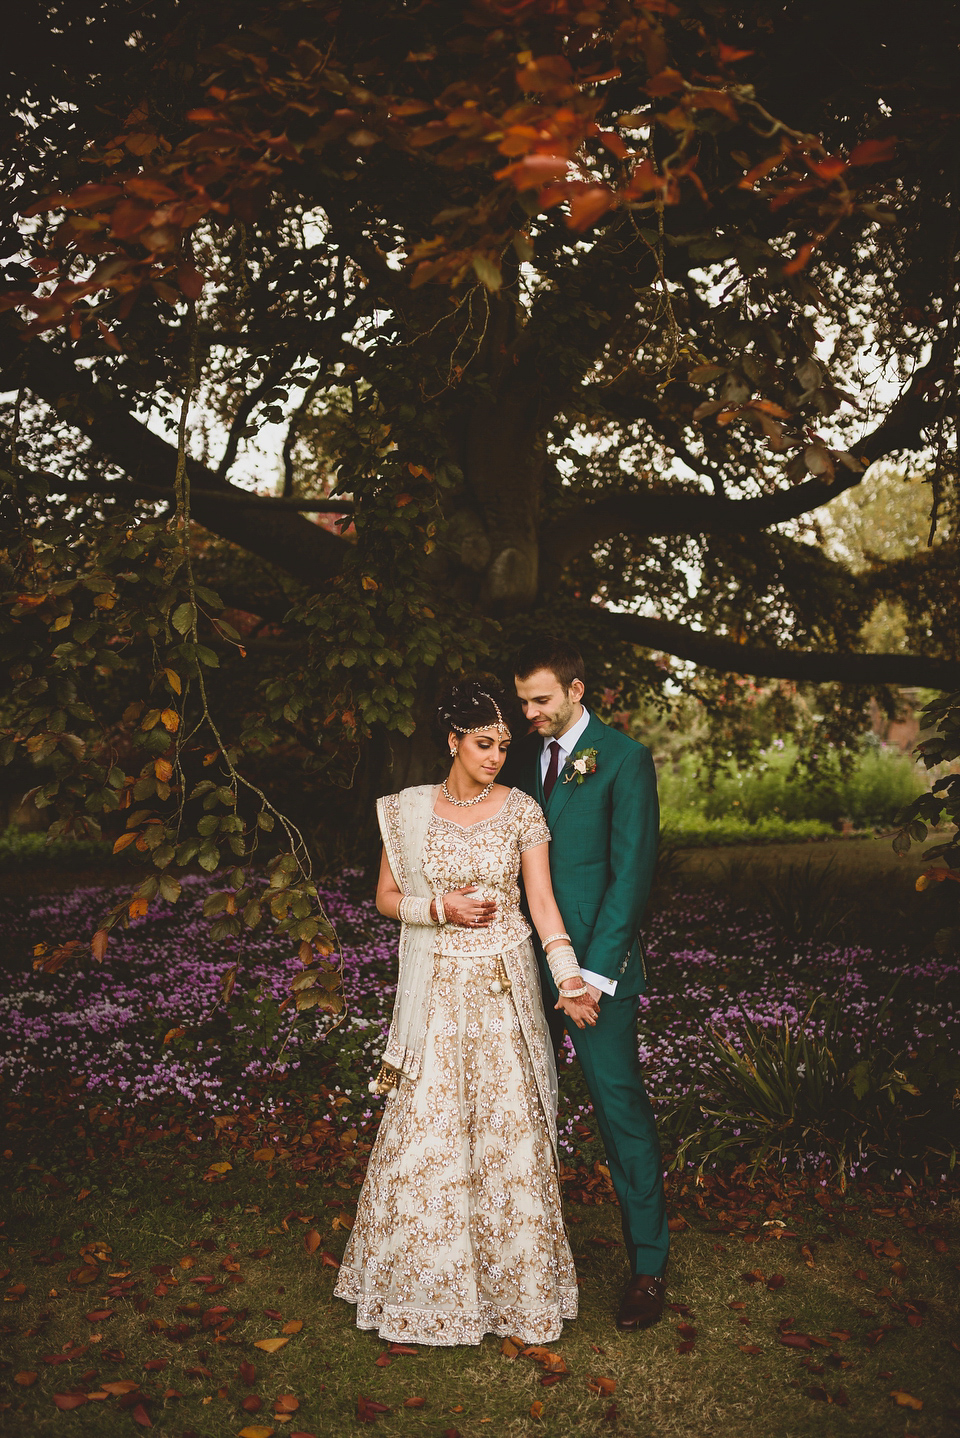 An Autumnal Anglo-Indian Fusion Wedding in the Cotswolds